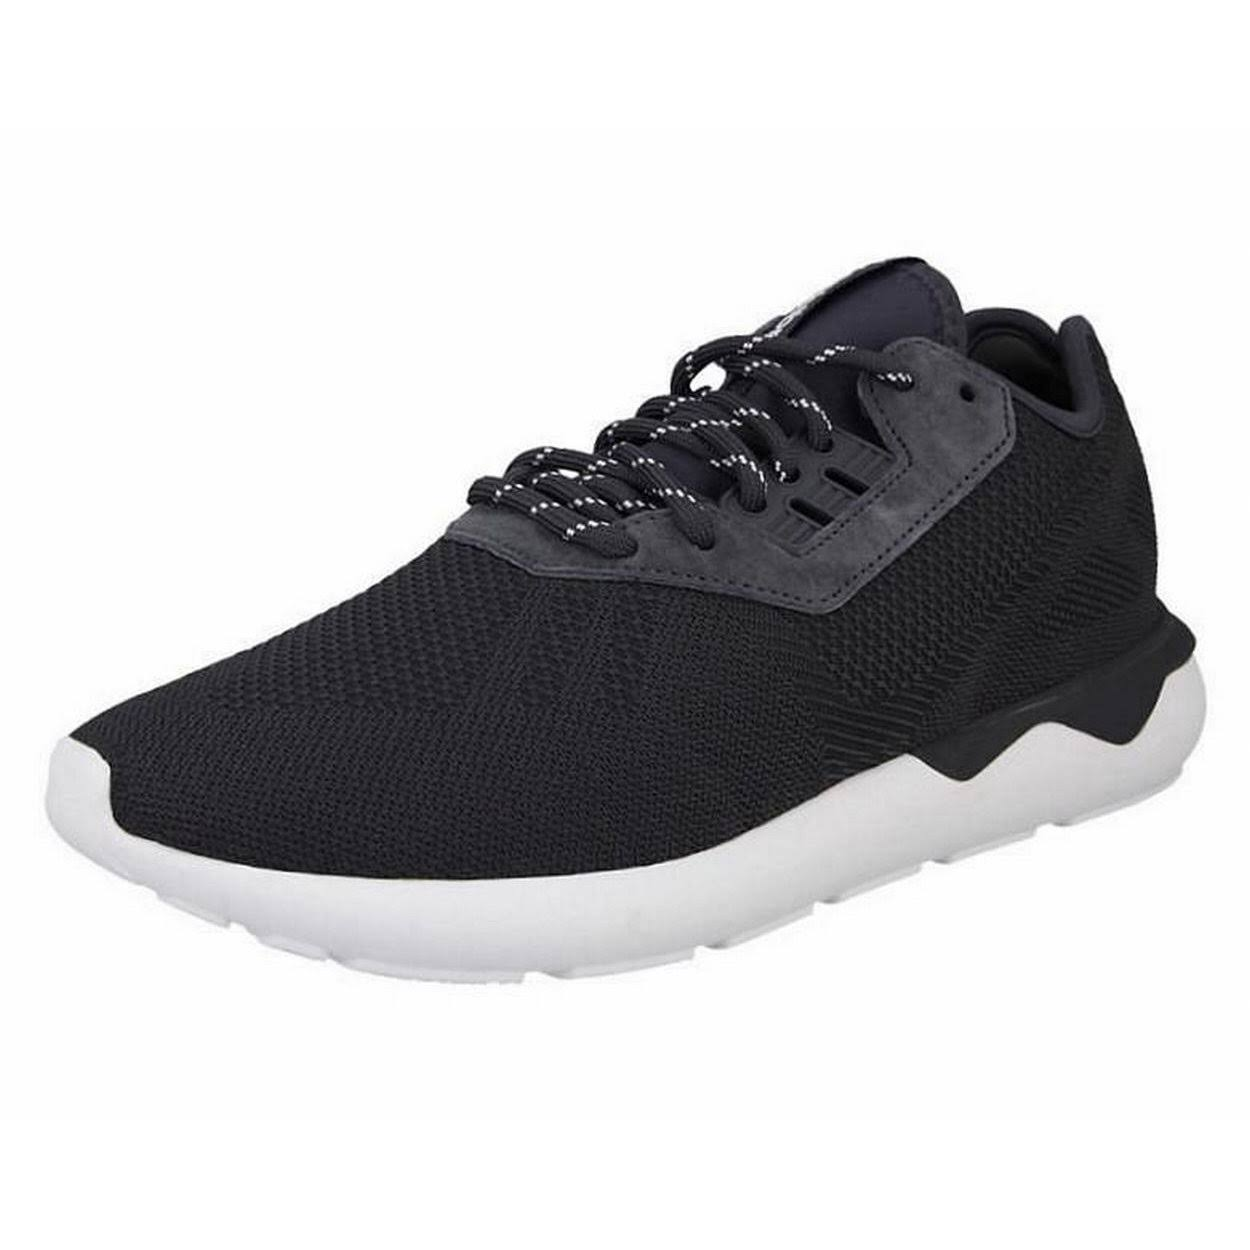 (9.5 UK) adidas Originals Men's Tubular Runner Weave Trainers Carbon